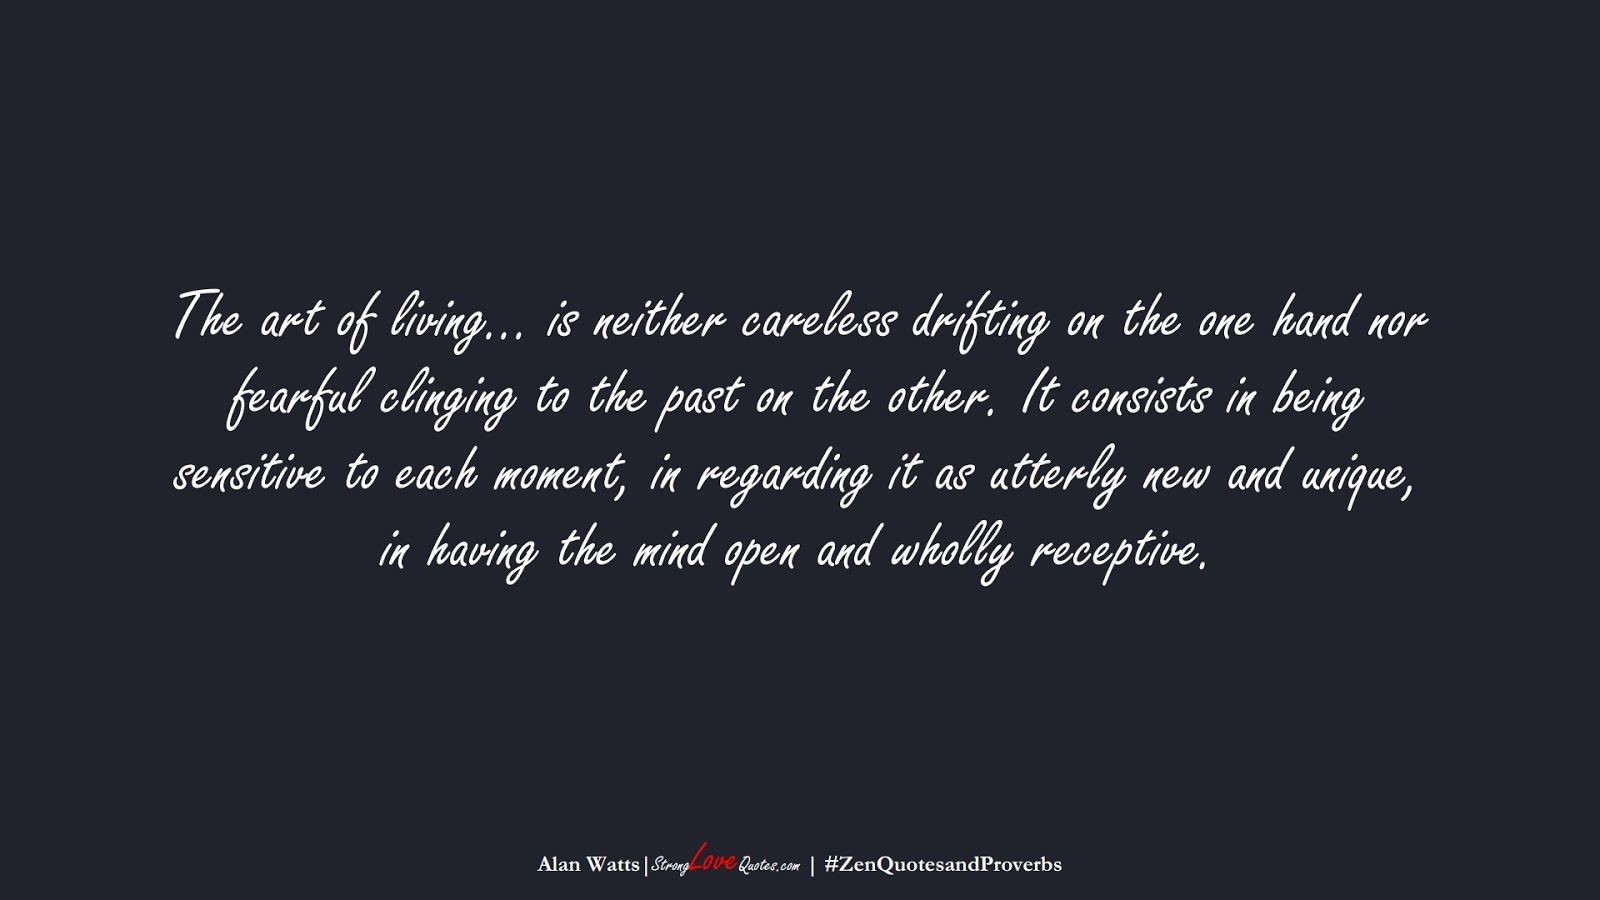 The art of living… is neither careless drifting on the one hand nor fearful clinging to the past on the other. It consists in being sensitive to each moment, in regarding it as utterly new and unique, in having the mind open and wholly receptive. (Alan Watts);  #ZenQuotesandProverbs